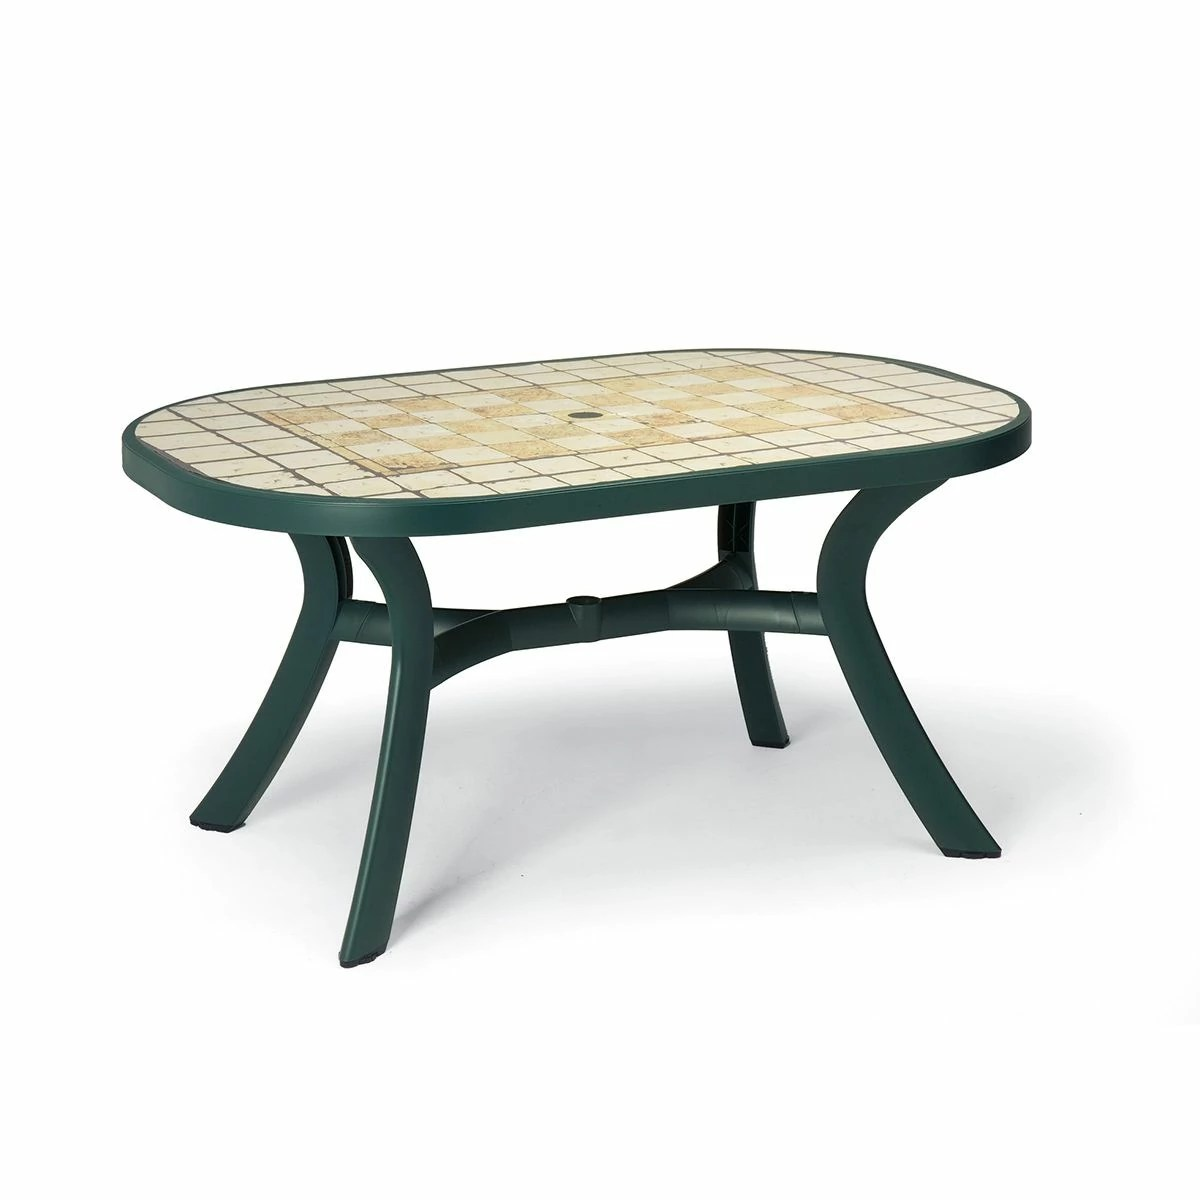 Table Jardin Ovale Table De Jardin Plastique Toscana Ovale Zendart Design